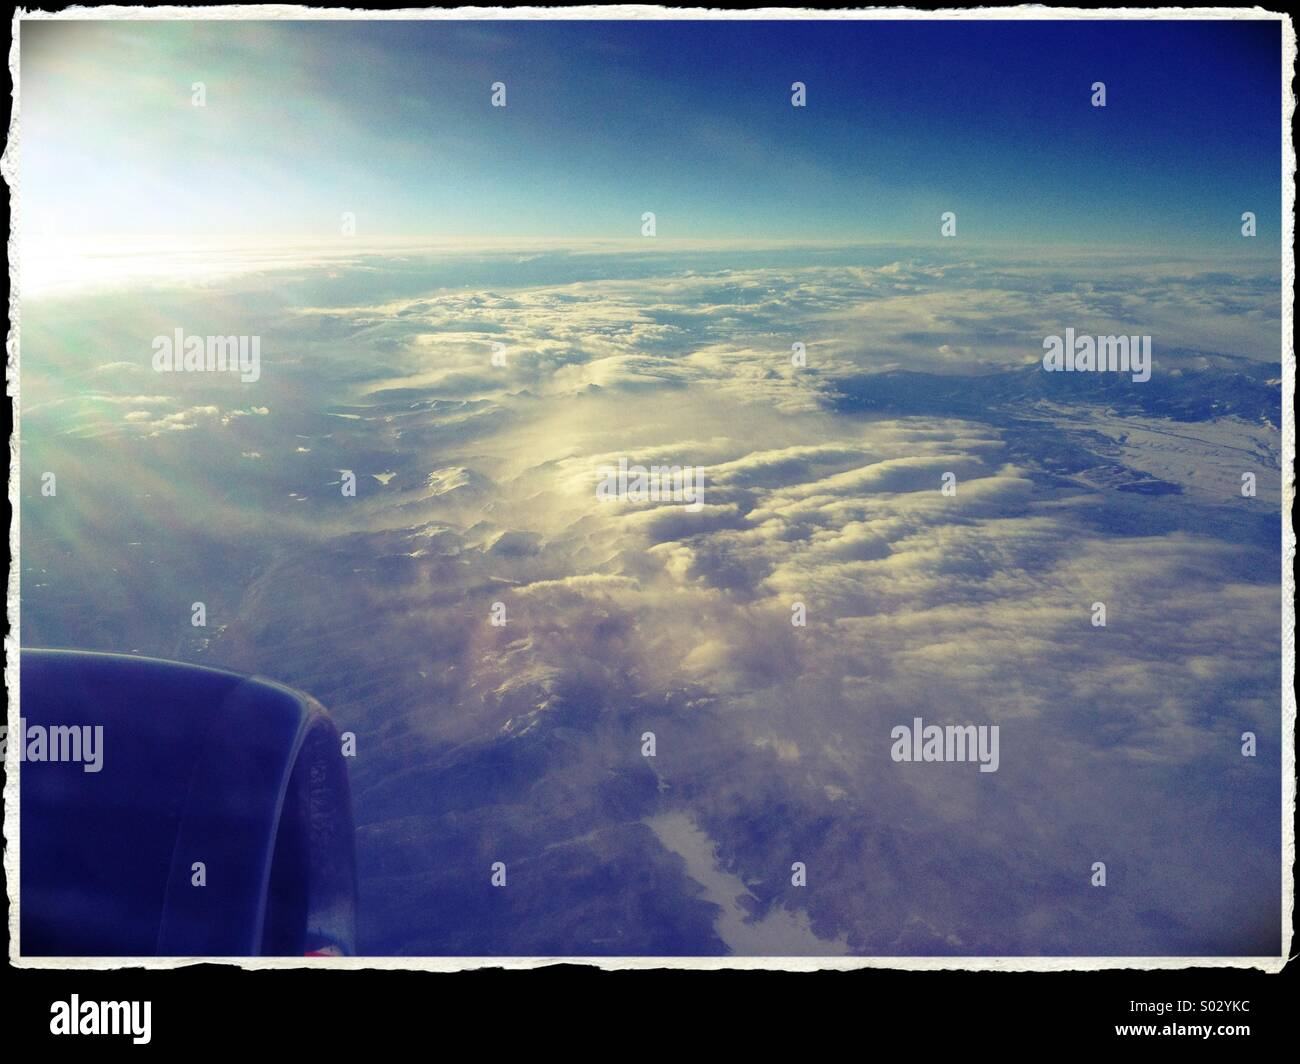 The view of clouds below, from an airplane window. - Stock Image